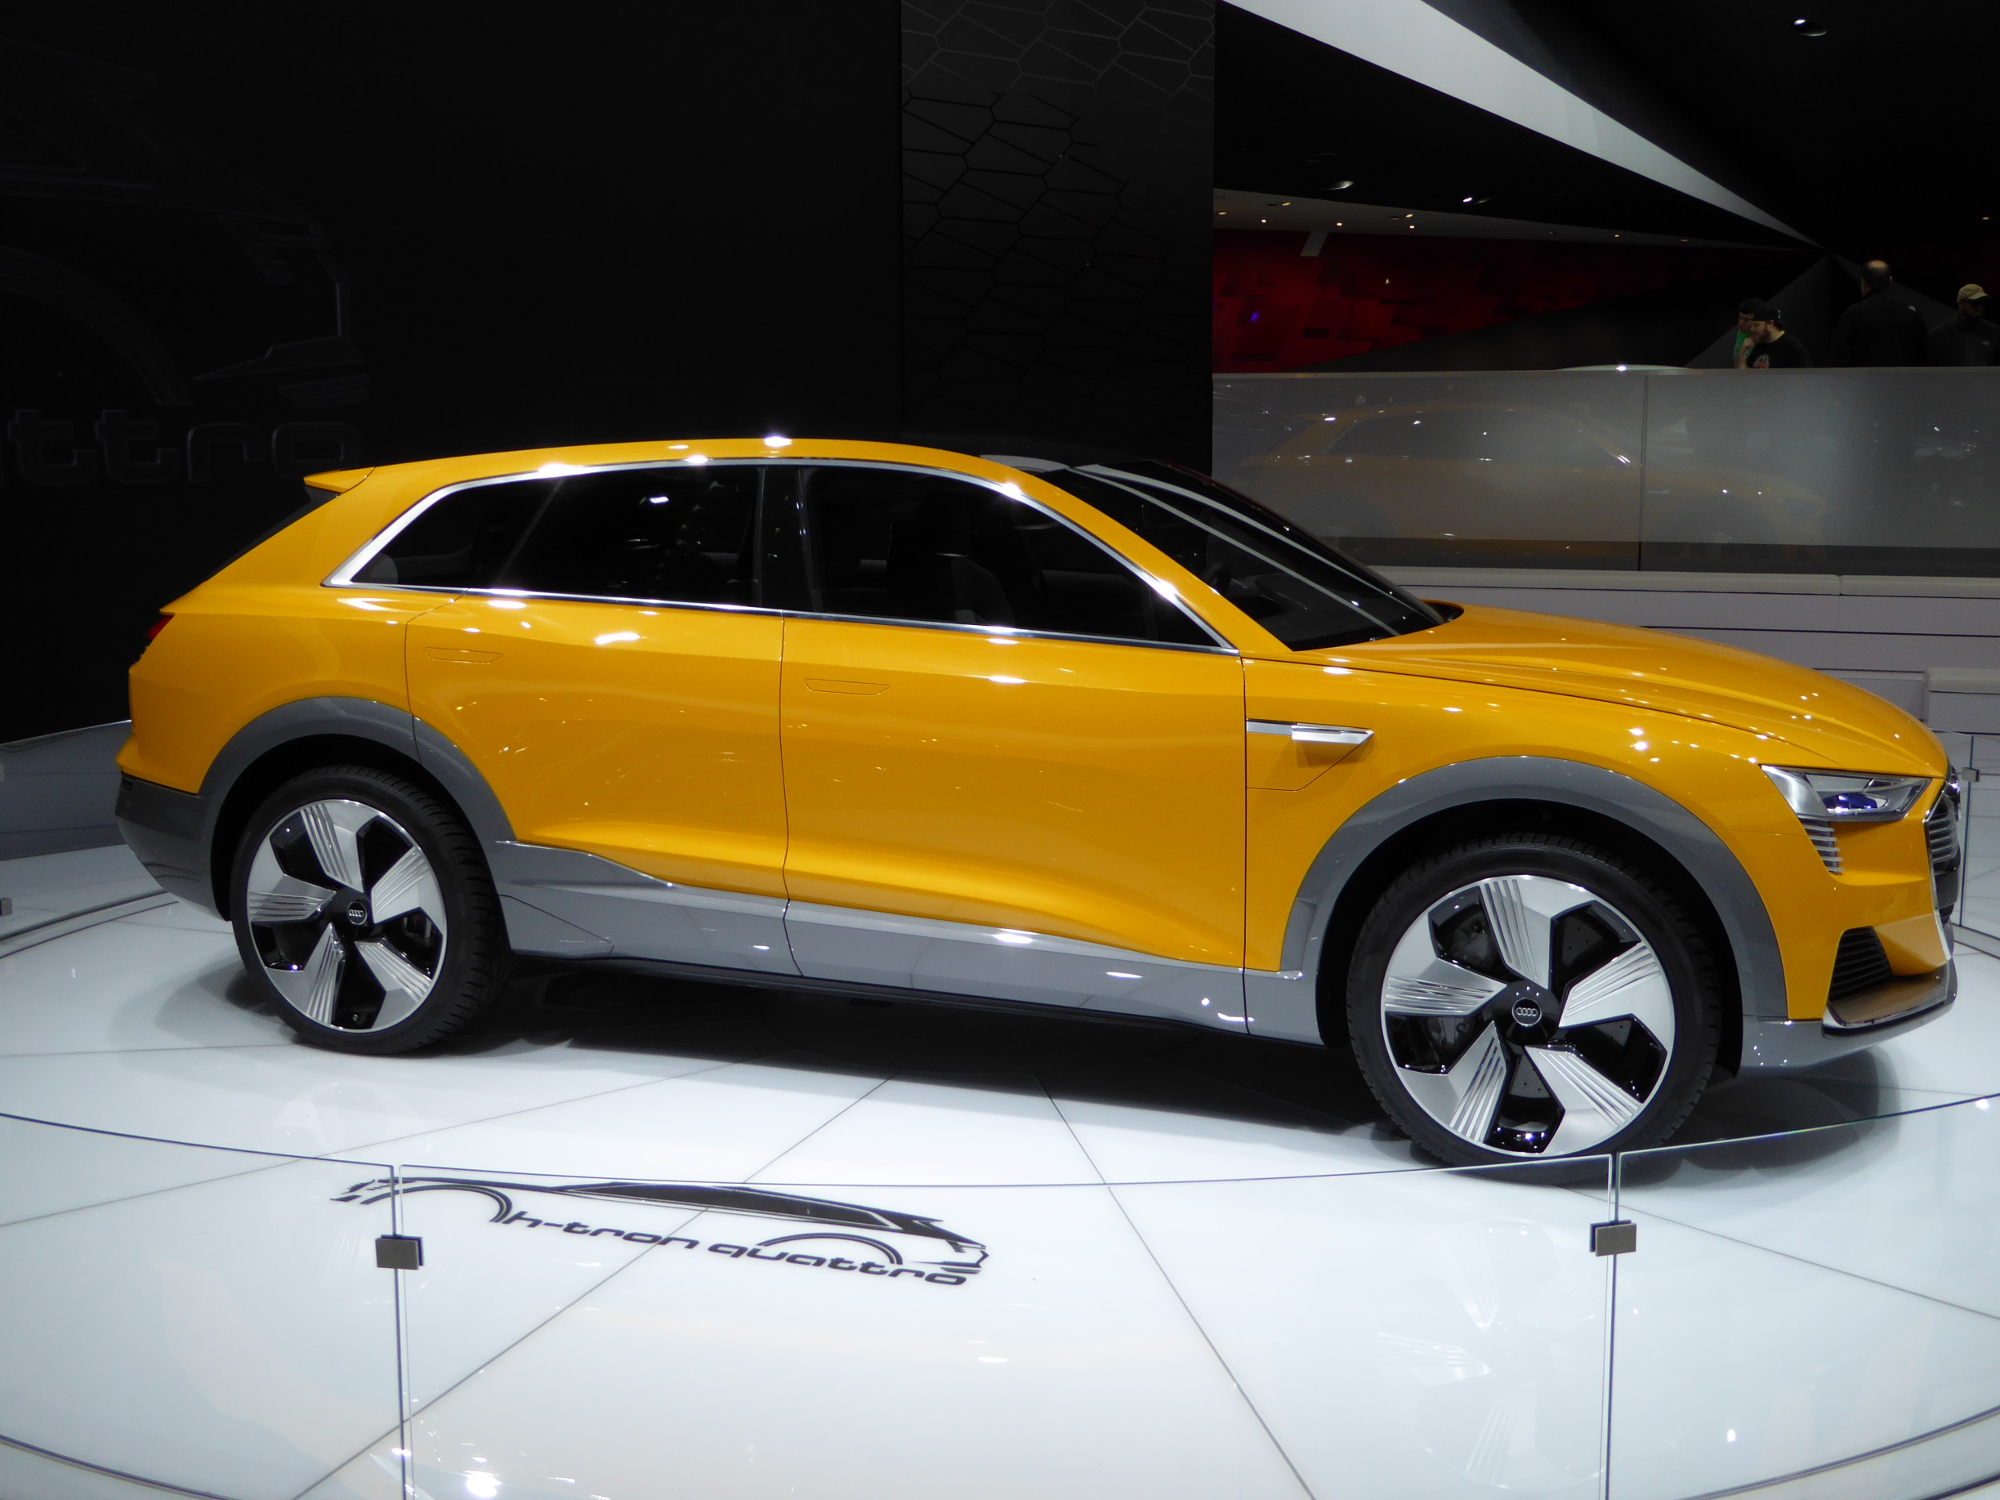 This is the Audi h-tron Quattro concept also at the North American International Auto Show in January 2016. Check out this video to hear & see Audi's vision at the NAIAS.